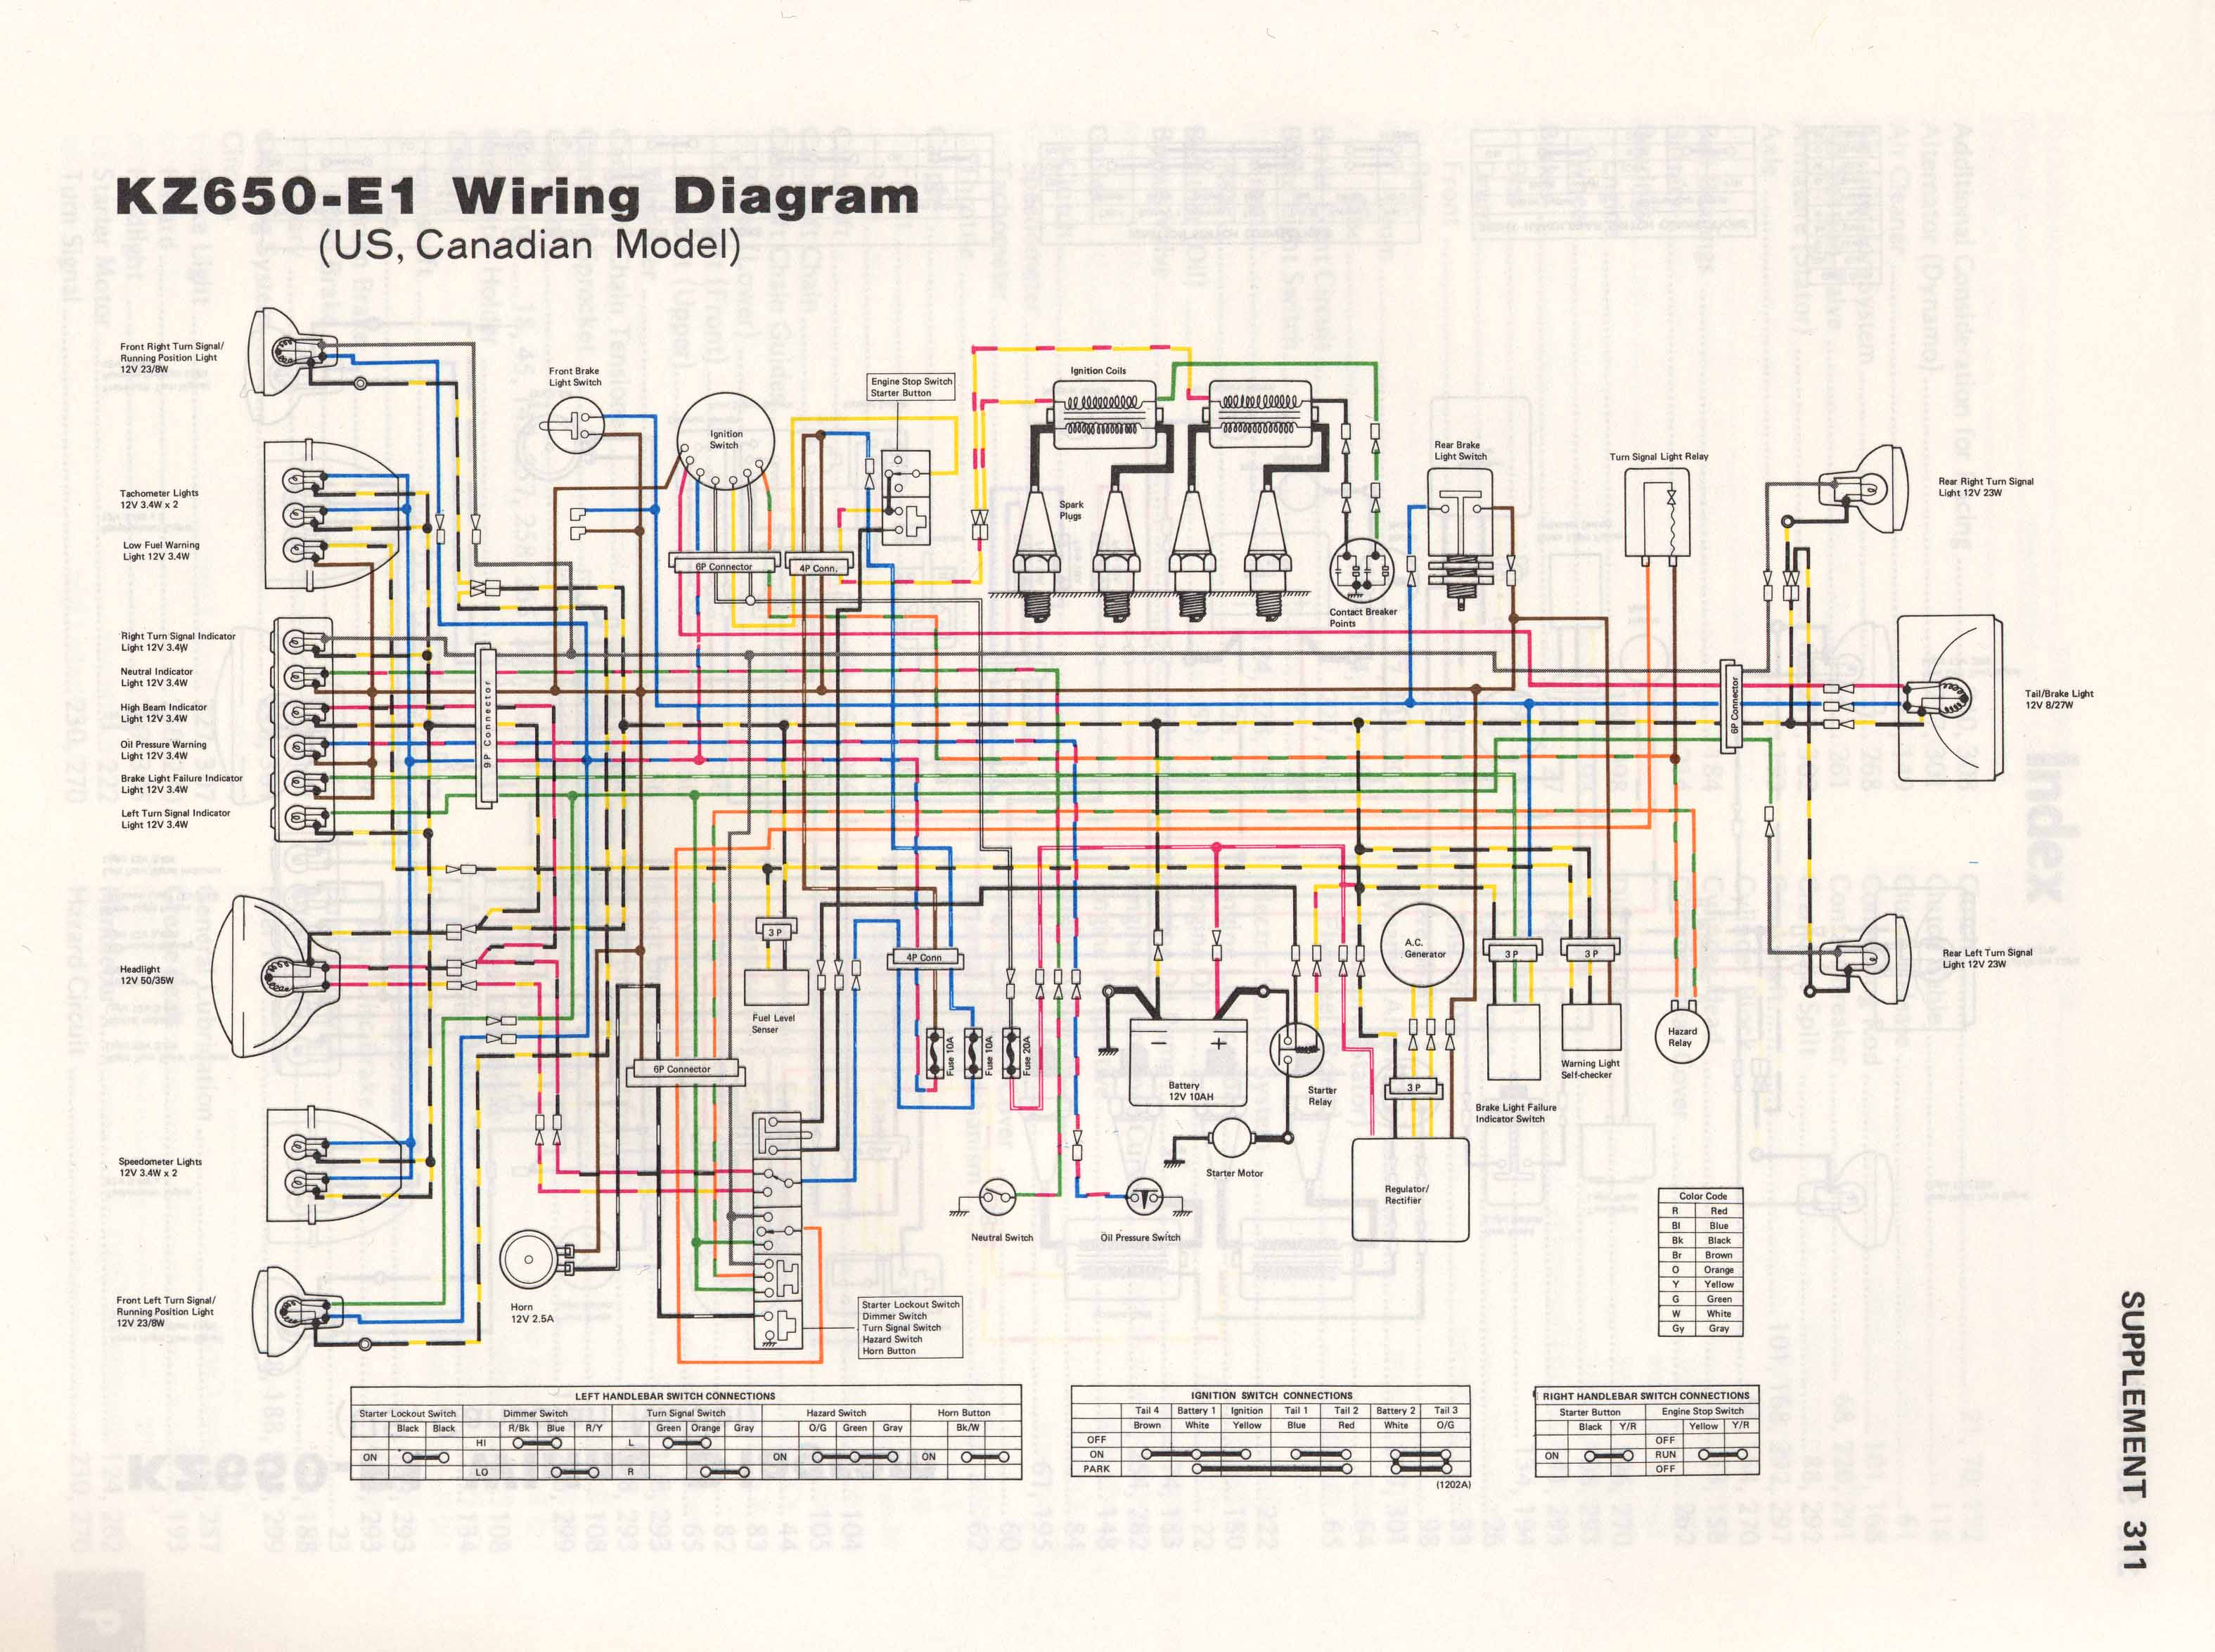 k z 400 wiring diagram wiring diagram R6 Wiring Diagram 1979 kz400 wiring diagram wiring diagramwire diagram 1979 kz400 circuit diagram templatewire diagram 1979 kz400 wiring